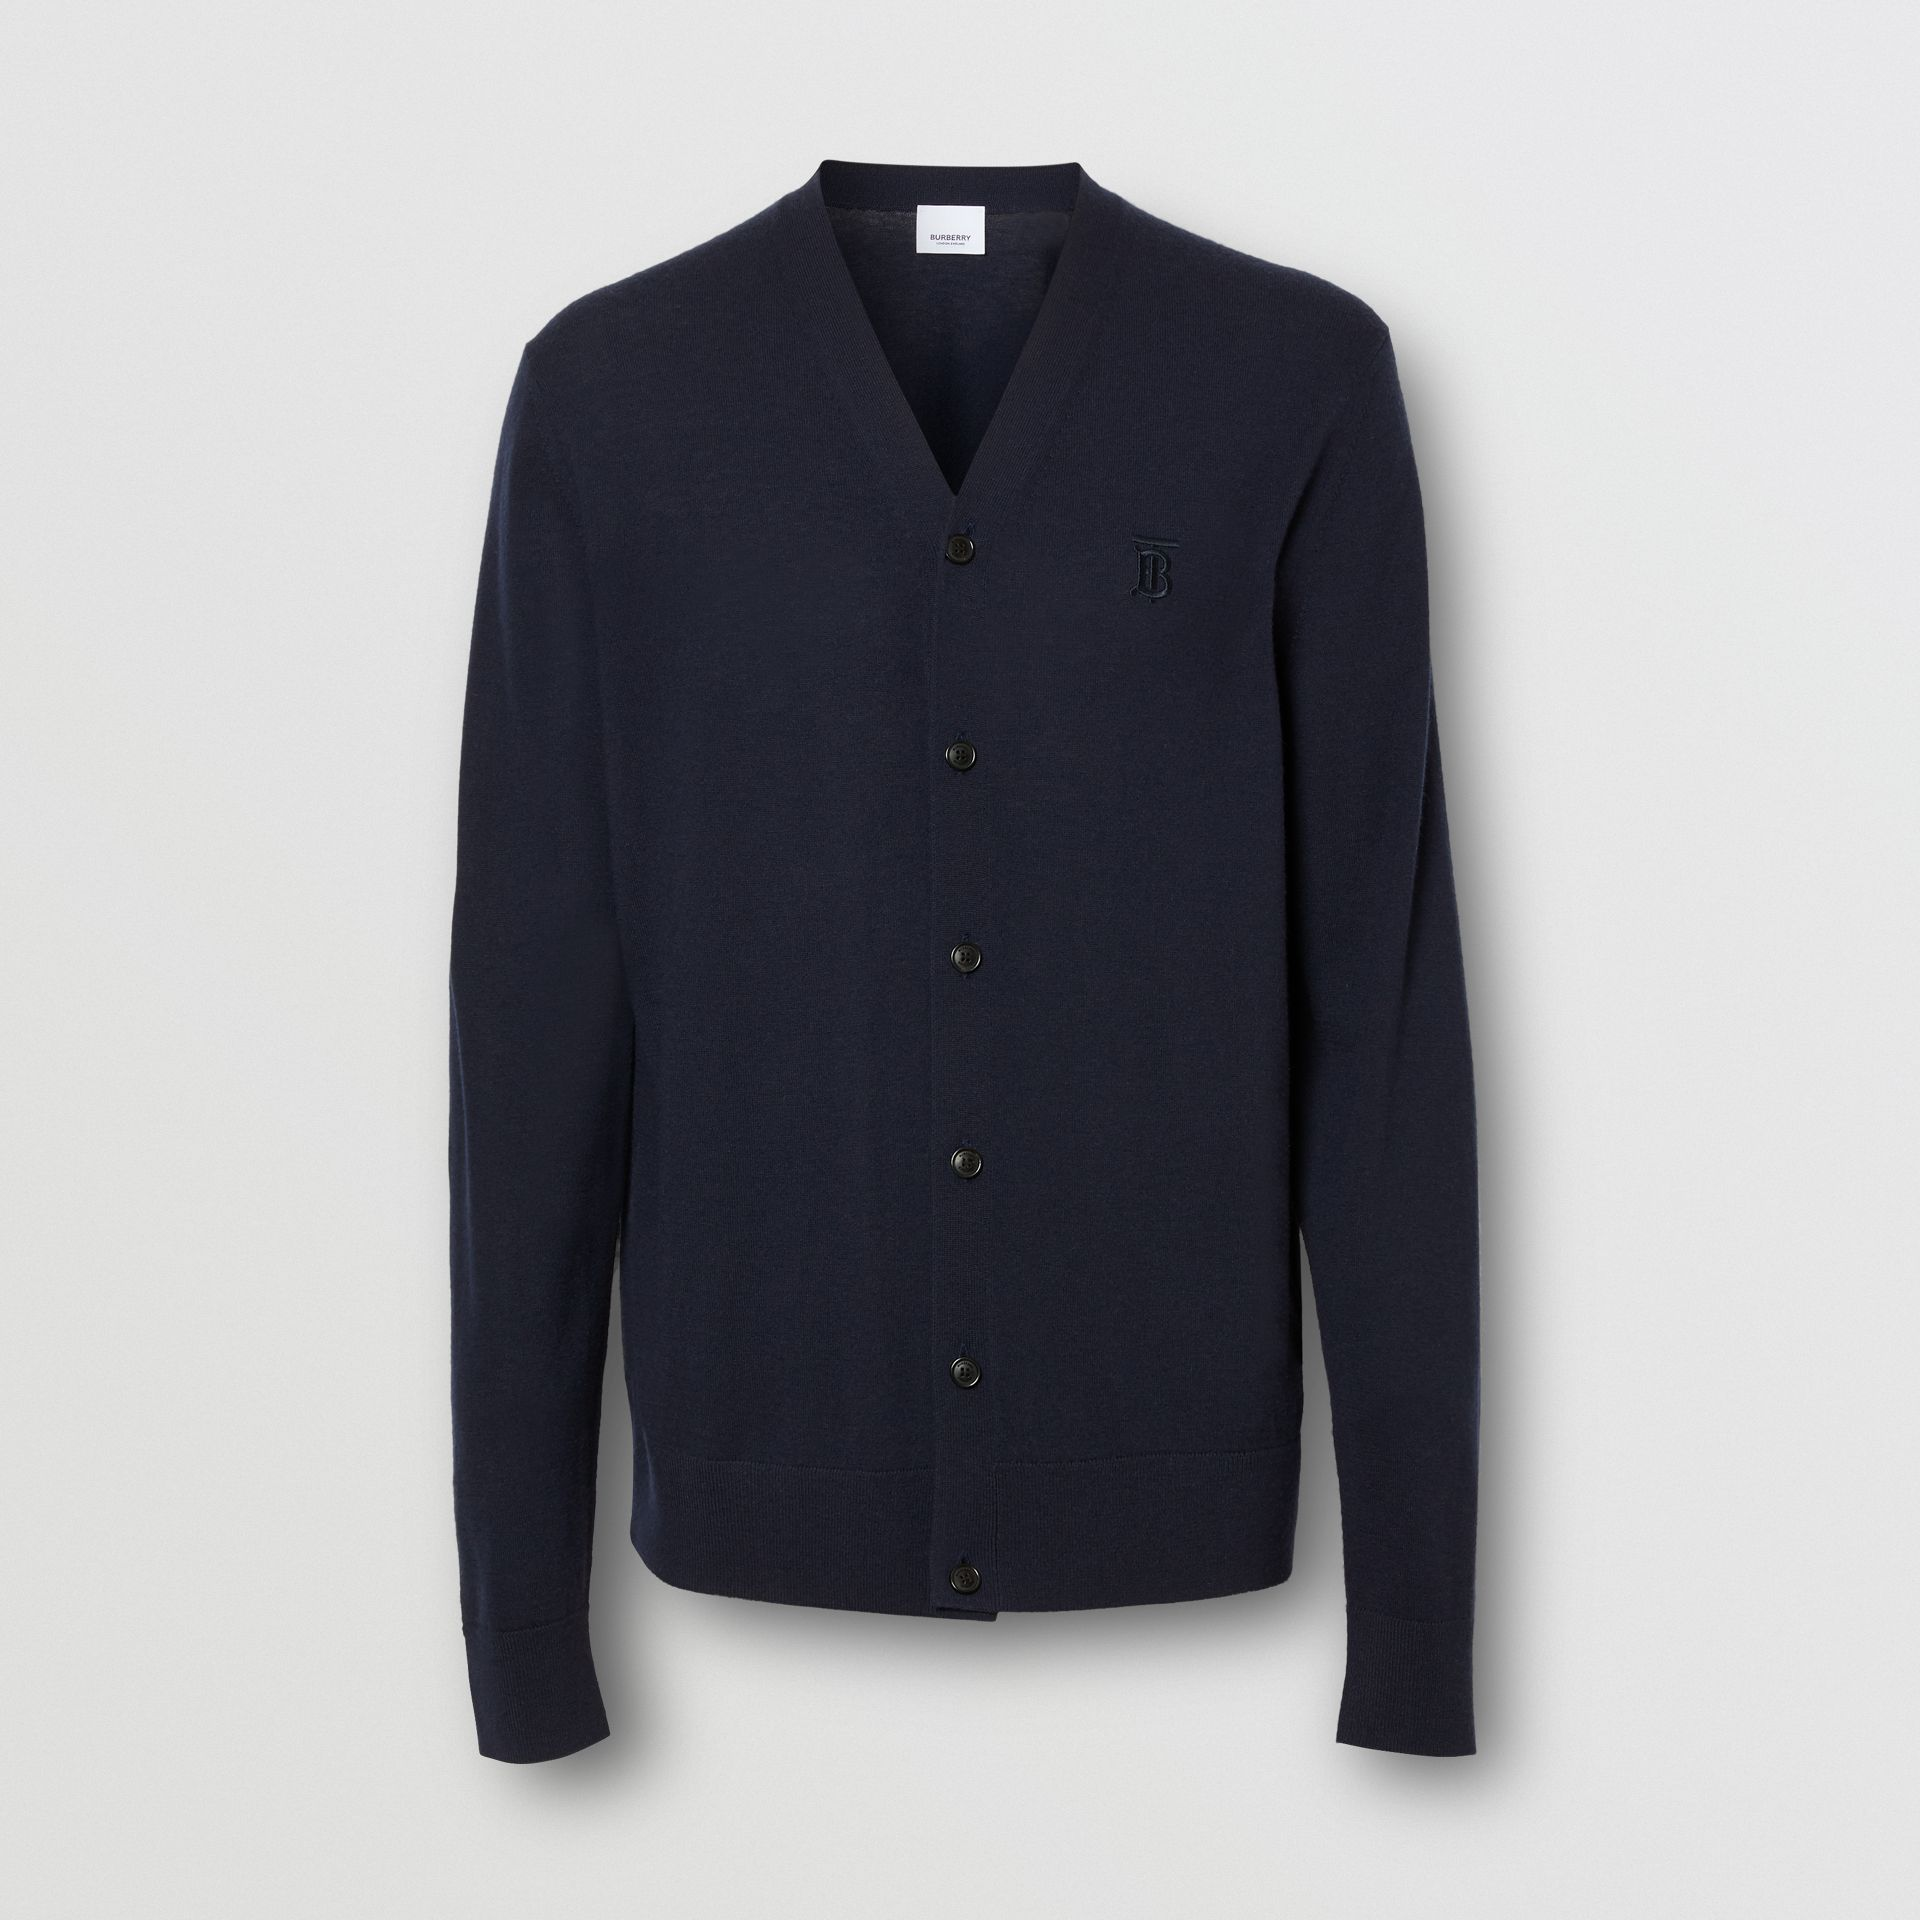 Monogram Motif Cashmere Cardigan in Navy - Men | Burberry - gallery image 3